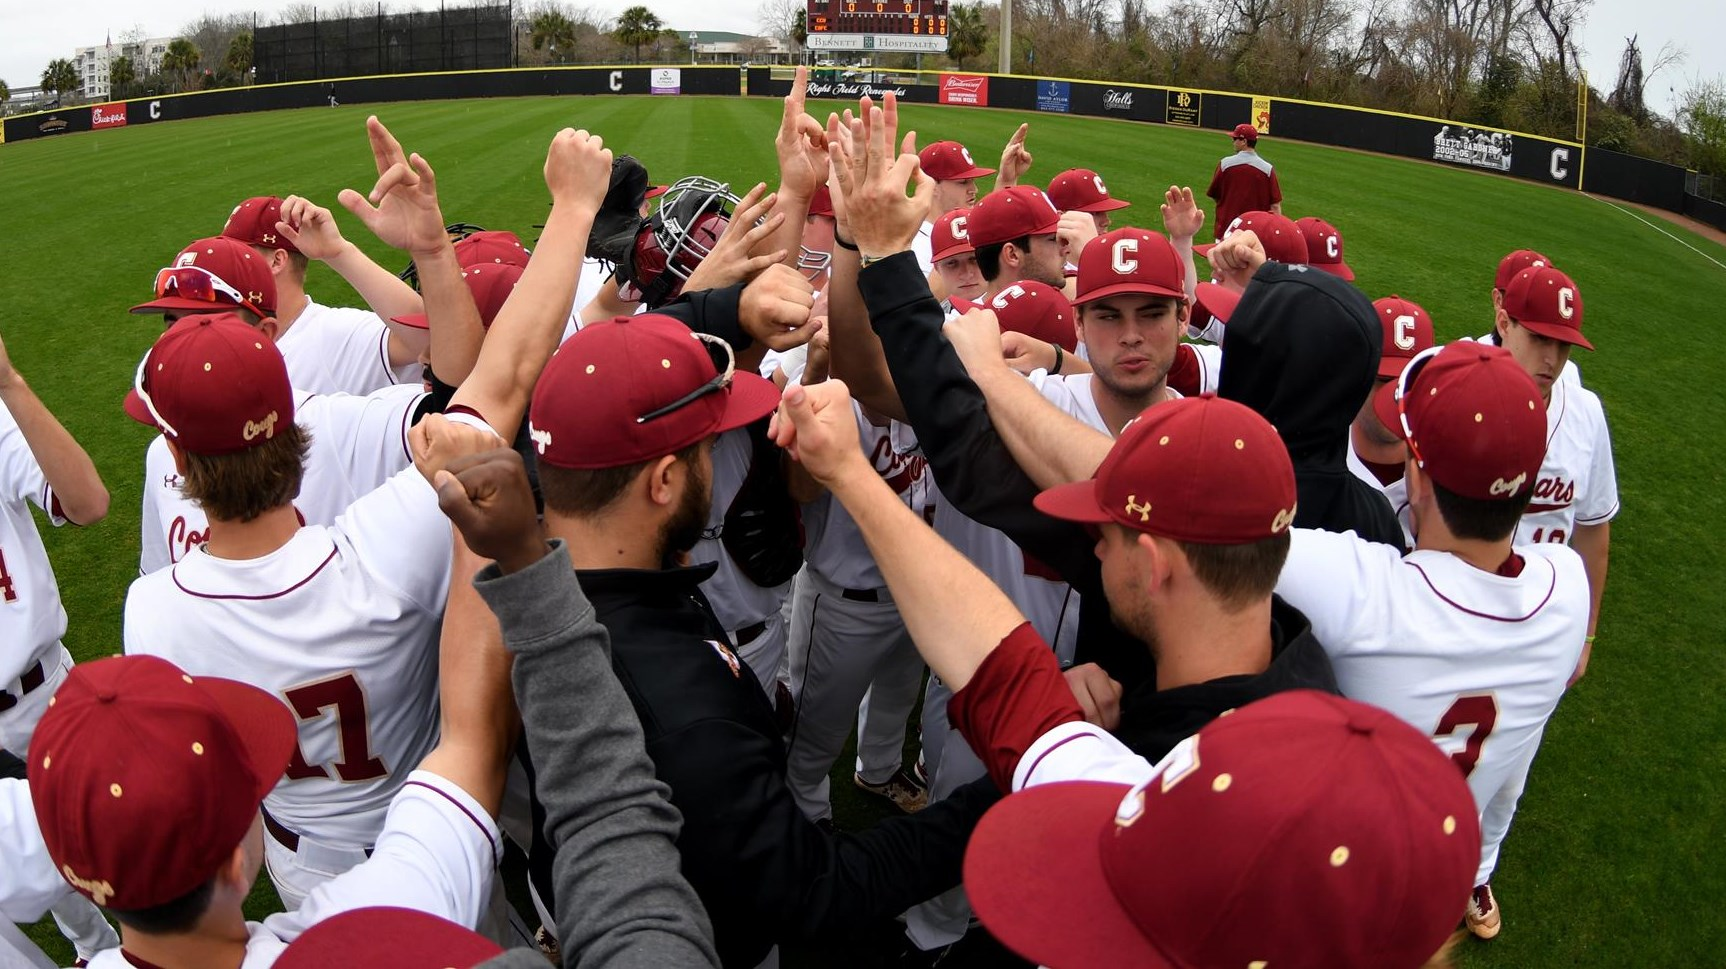 e895b1506 Cougars and Tigers Renew Rivalry With Two-Game Midweek Series ...